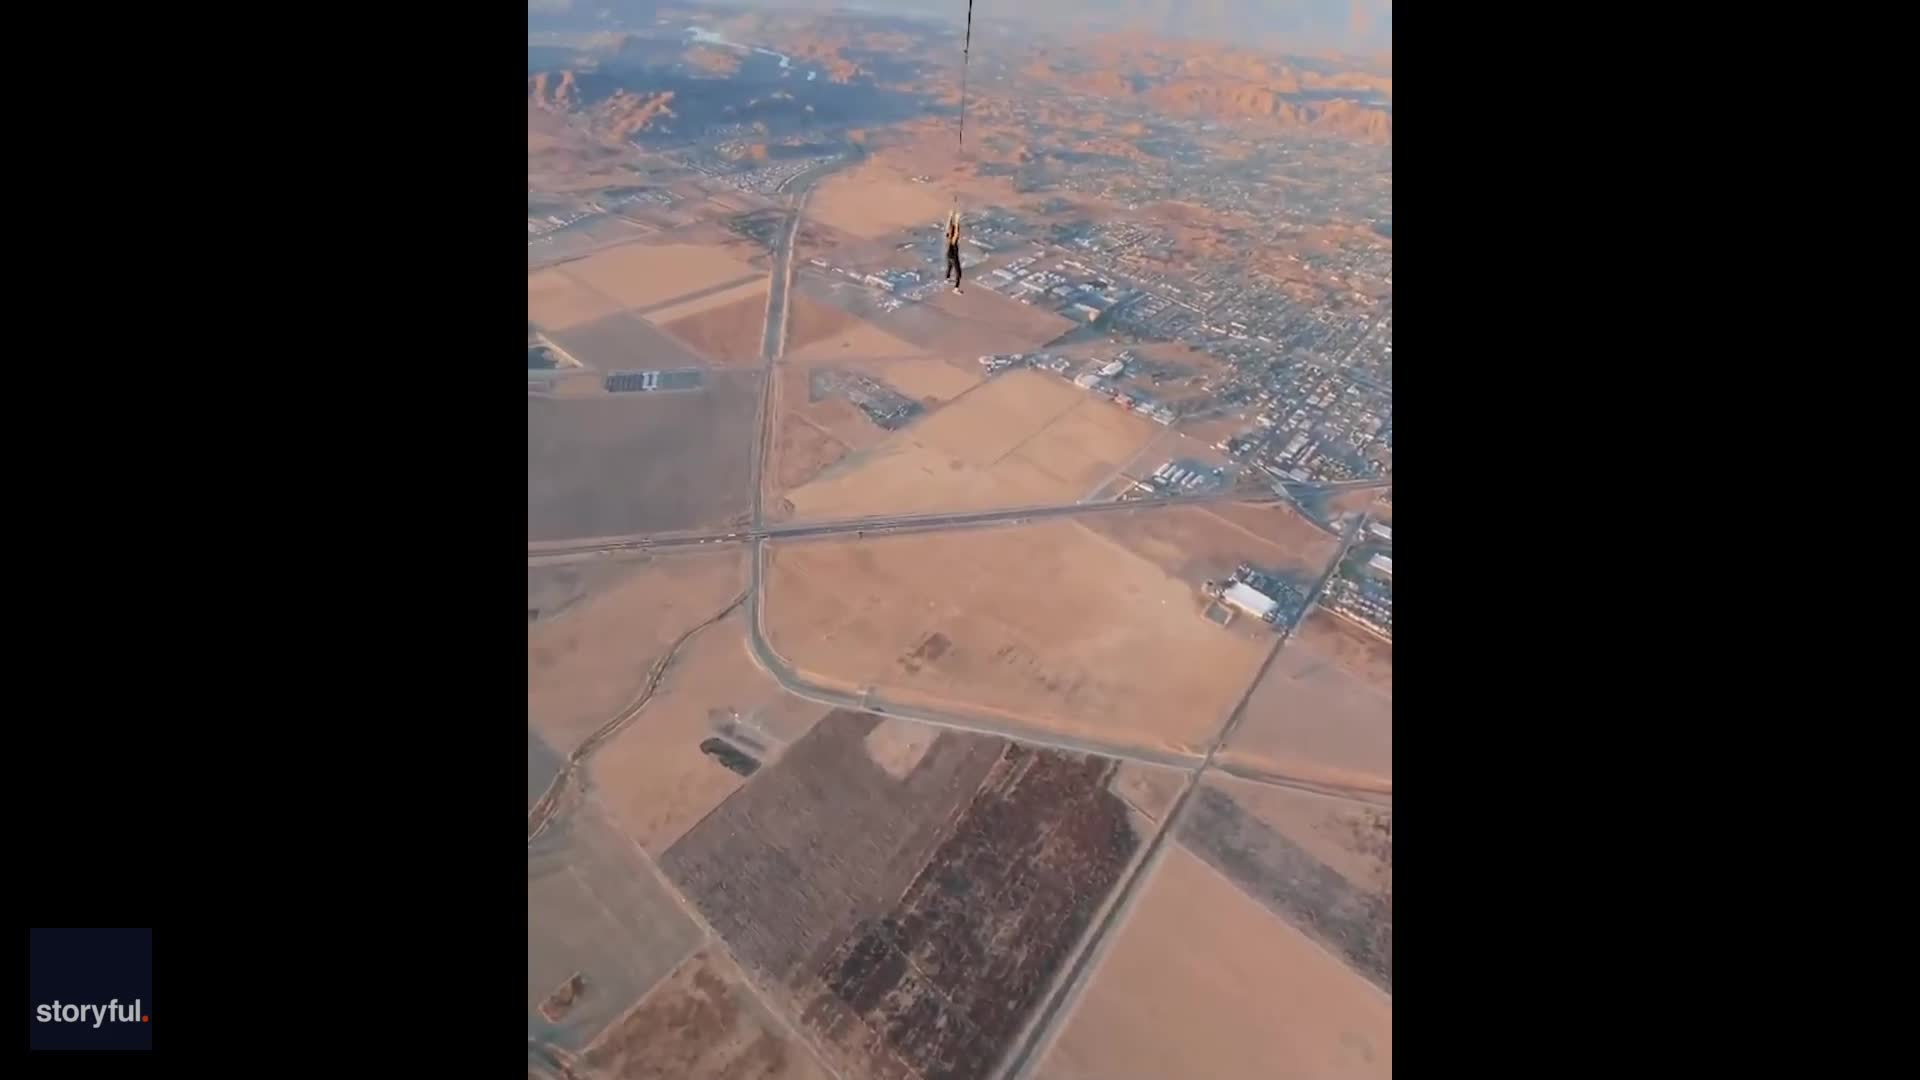 uk.news.yahoo.com: 'See Ya!': Skydiver Makes Swinging Departure From Hot-Air Balloon Over California